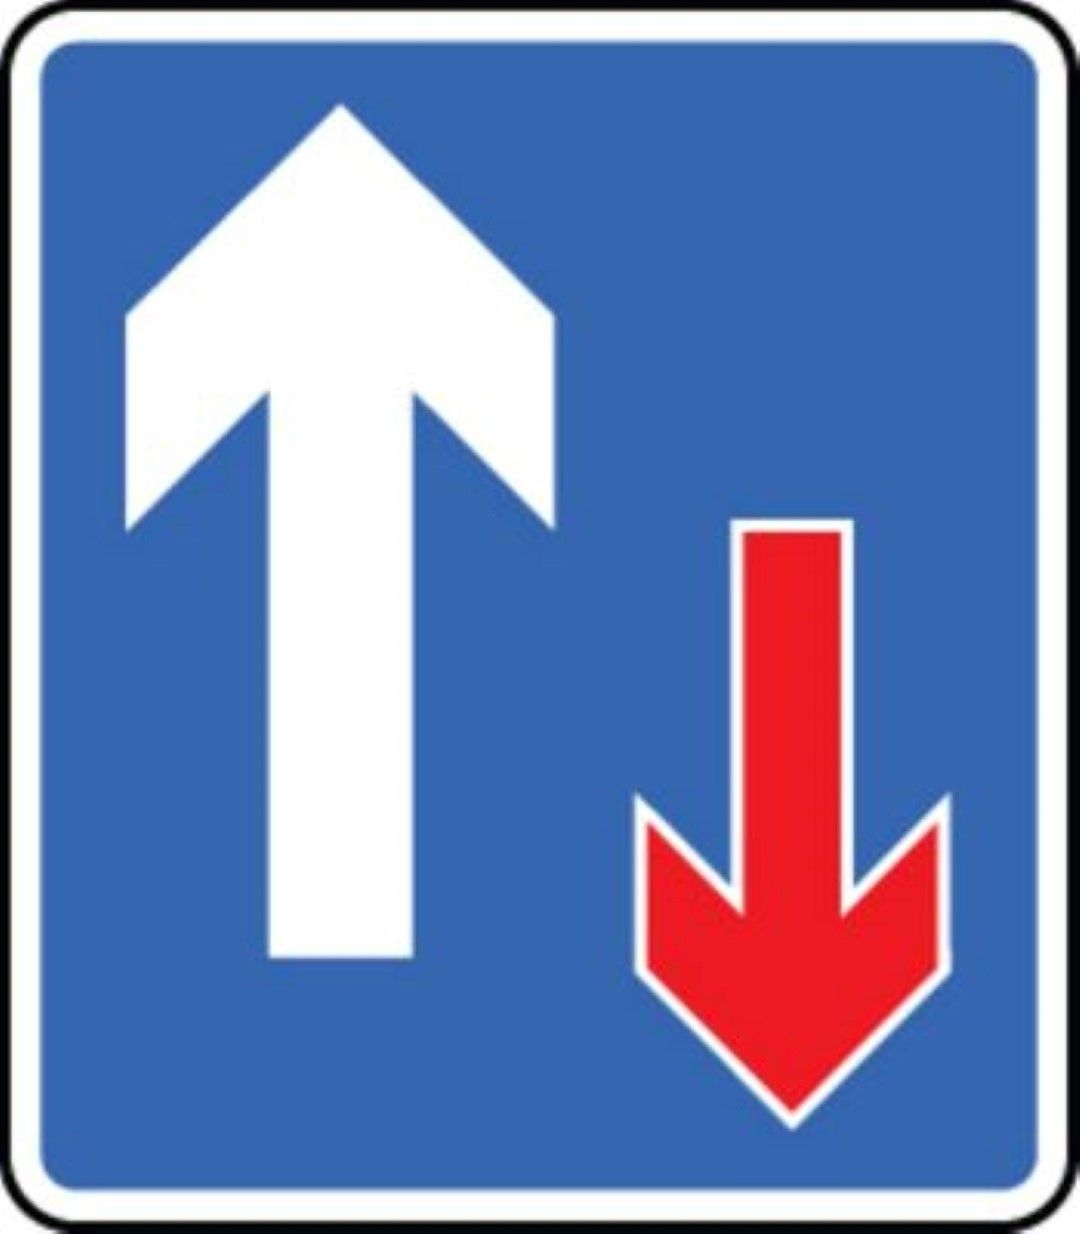 Flowers And Butterflies Wall Stickers Give Way Priority Traffic Road Traffic Warning Sign Self